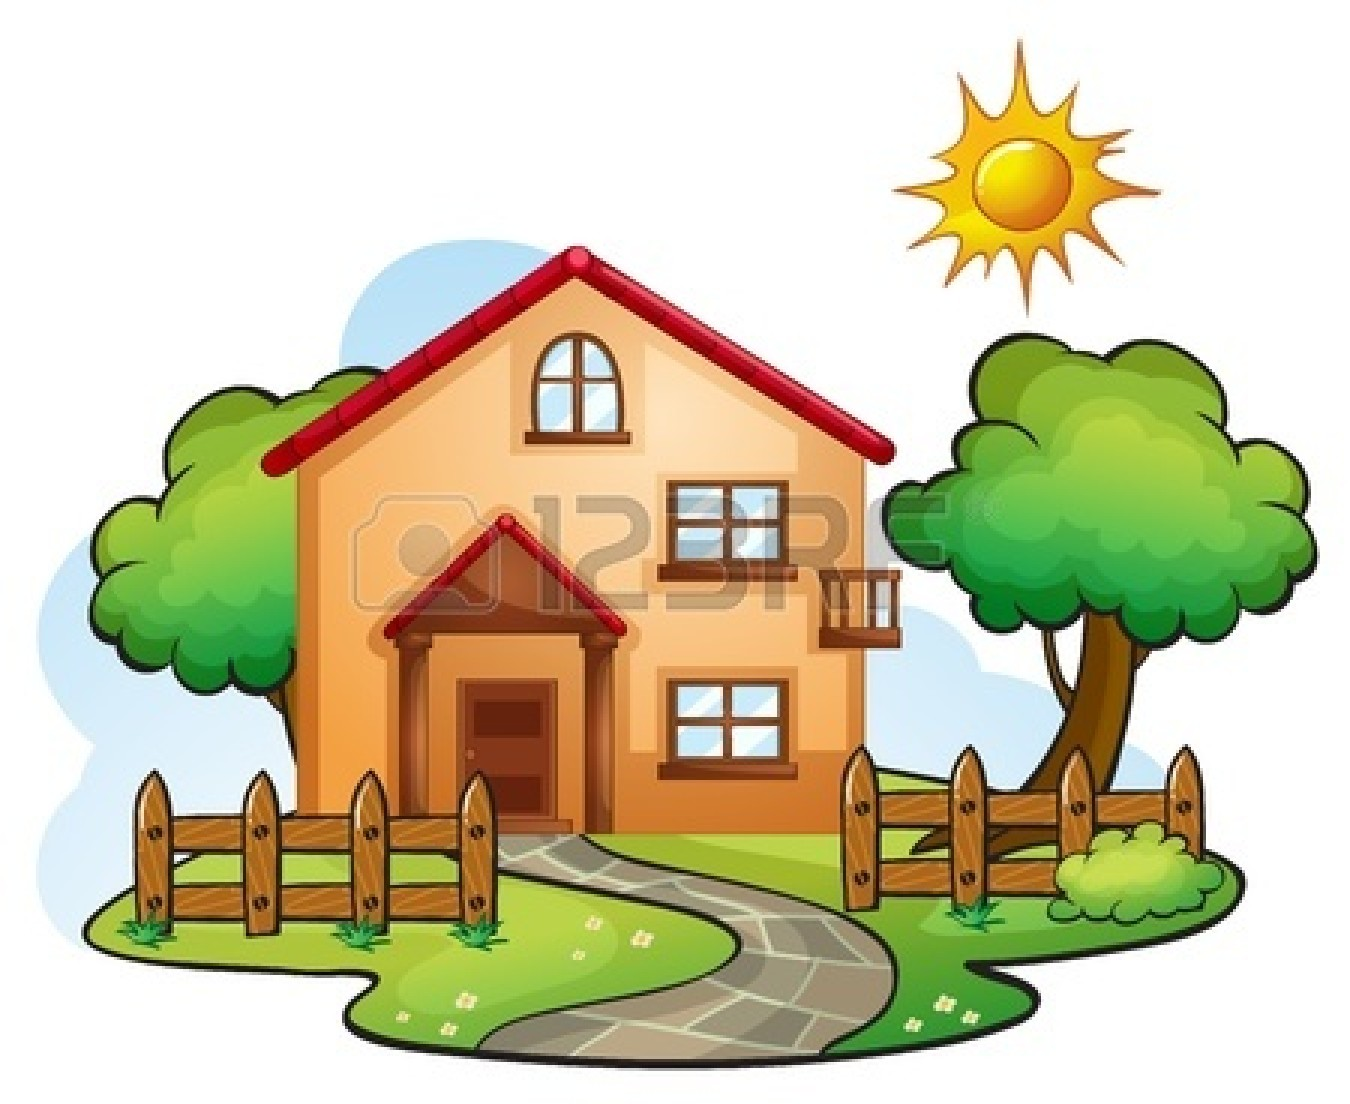 Cute house illustration clipart panda free clipart images for Pictures of home